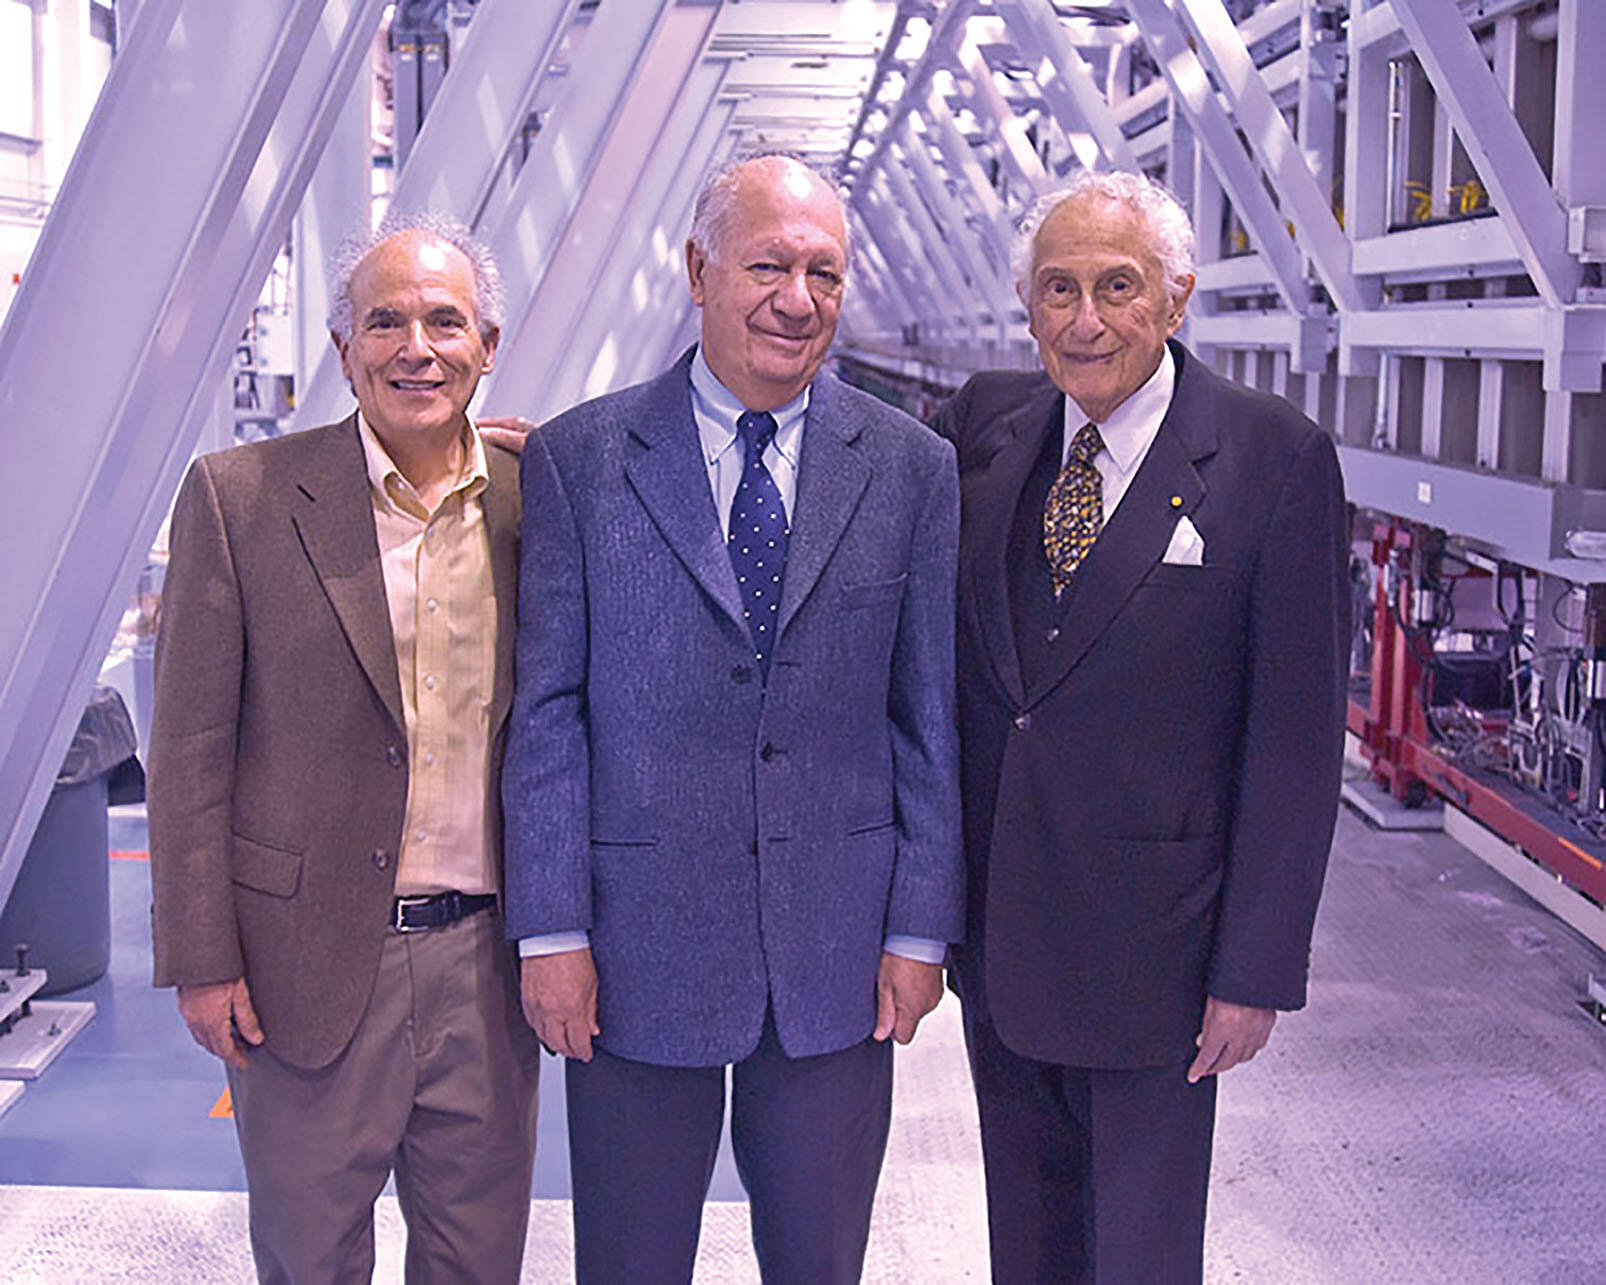 Stan Ovshinsky hosting Harley Shaiken and Ricardo Lagos at one of his continuous thin-film solar production machines in Detroit in 2009. (Photo by Brendan Ross.)